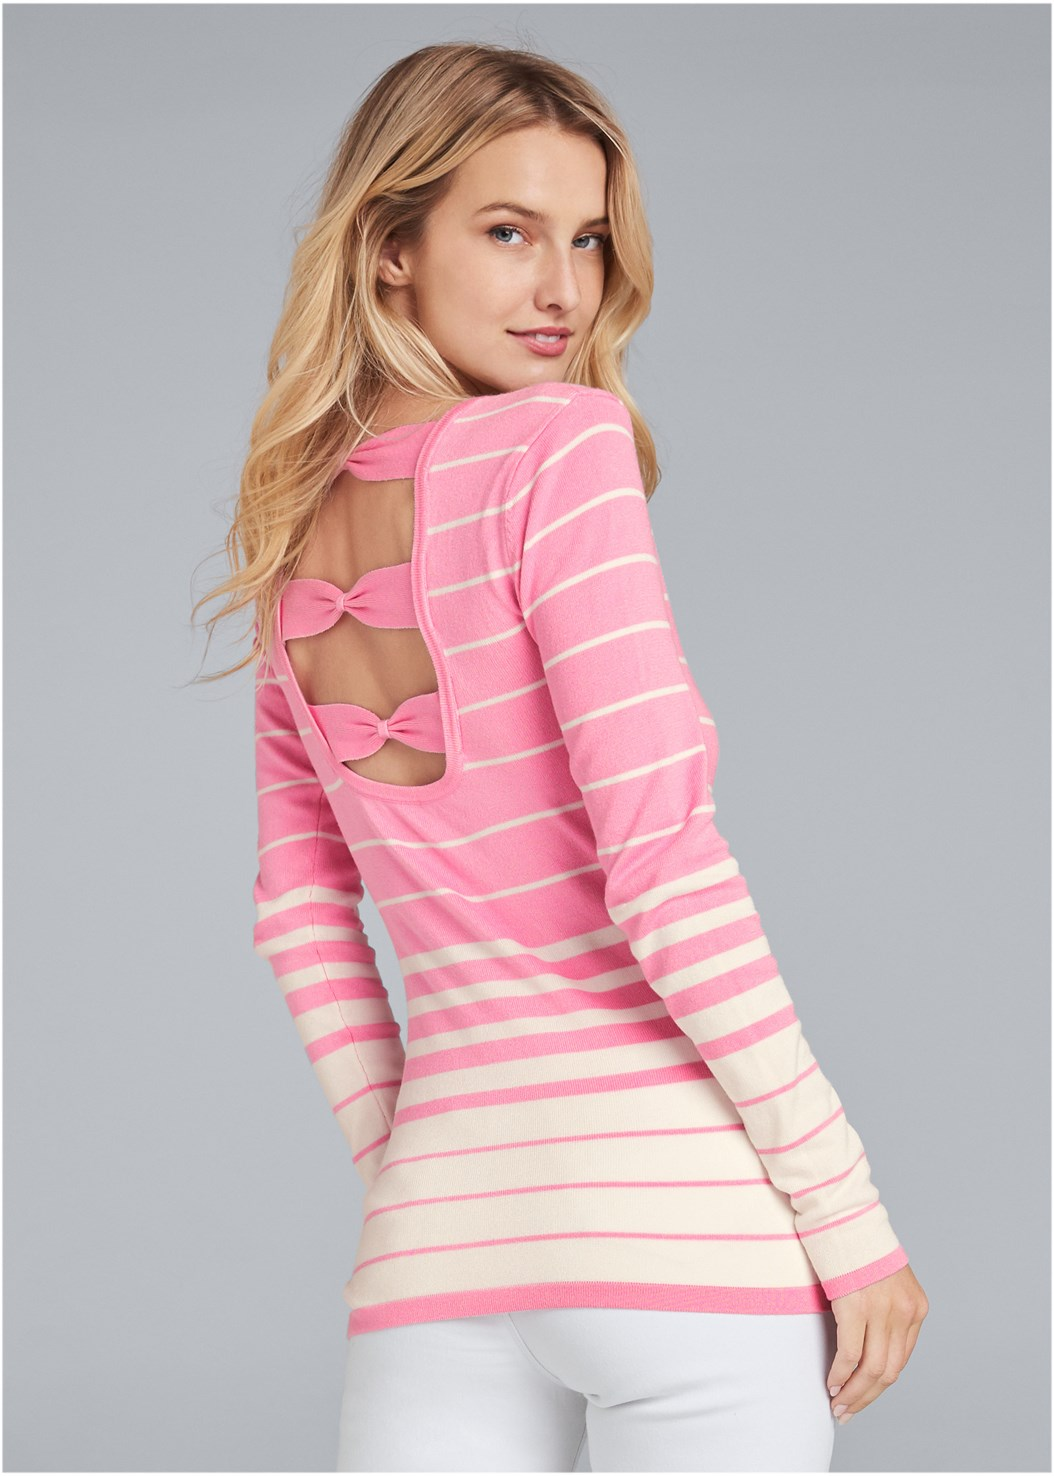 Back Detail Striped Sweater,Mid Rise Color Skinny Jeans,Double Strap Cork Wedge